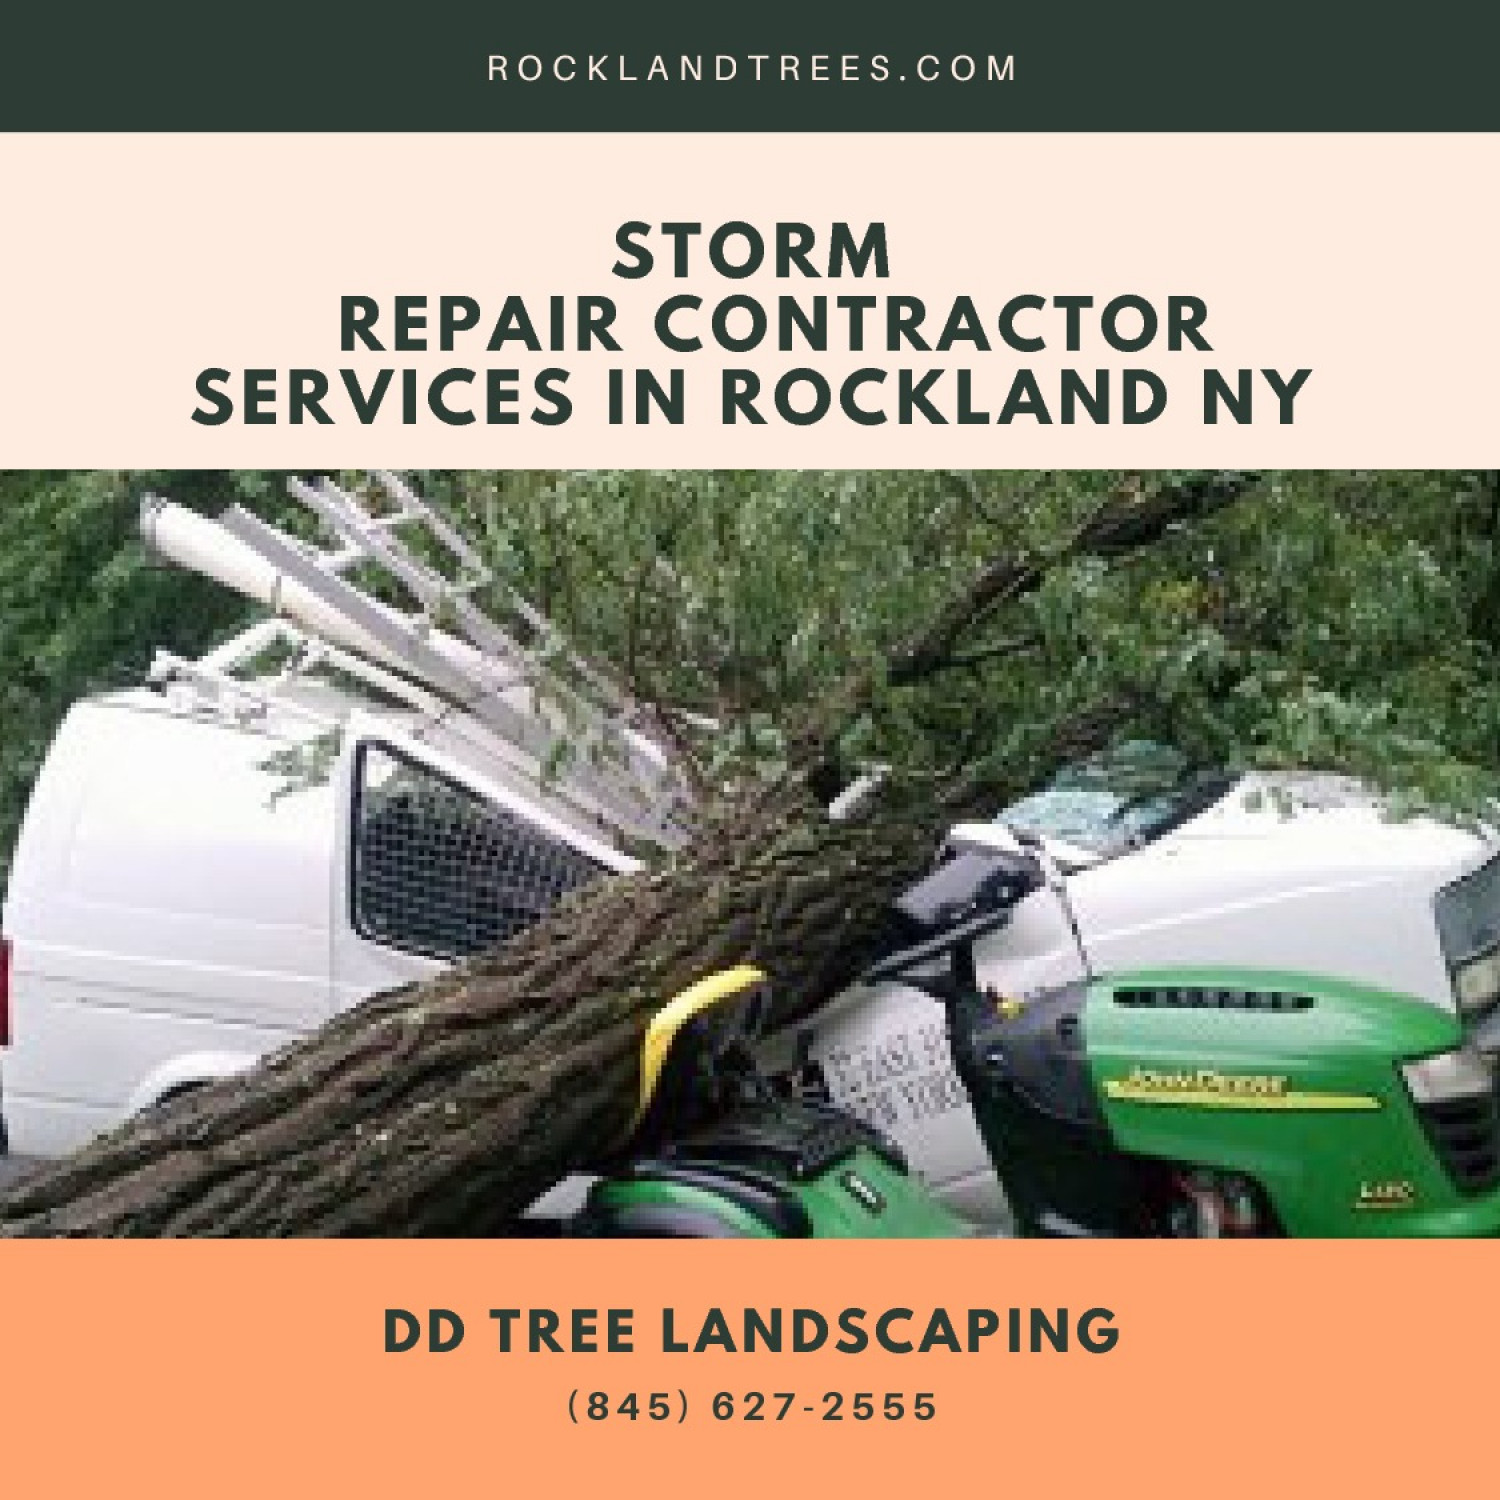 Storm Repair Contractor Services in Rockland NY Infographic